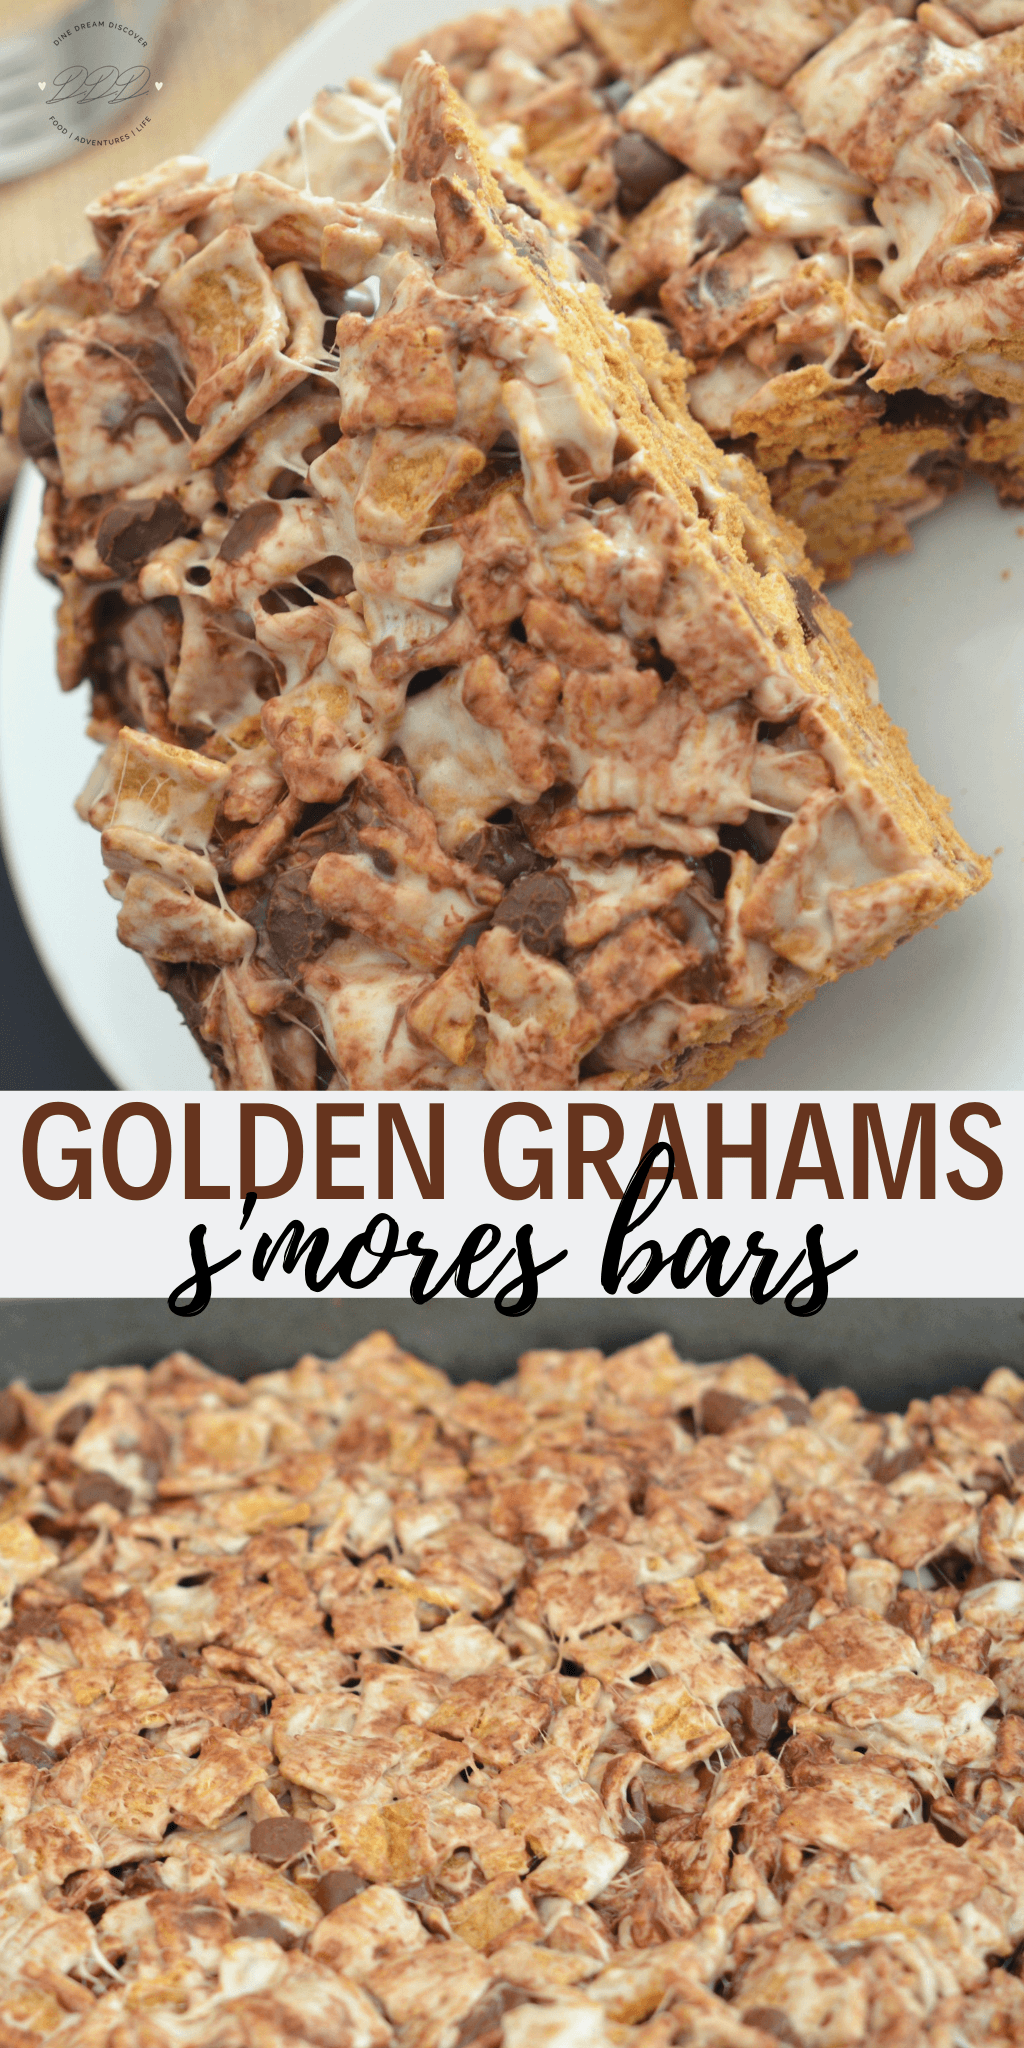 Bringing all your favorite flavors together with marshmallows, Golden Graham cereal and chocolate chips in this easy with the Golden Graham S'mores Bars recipe.